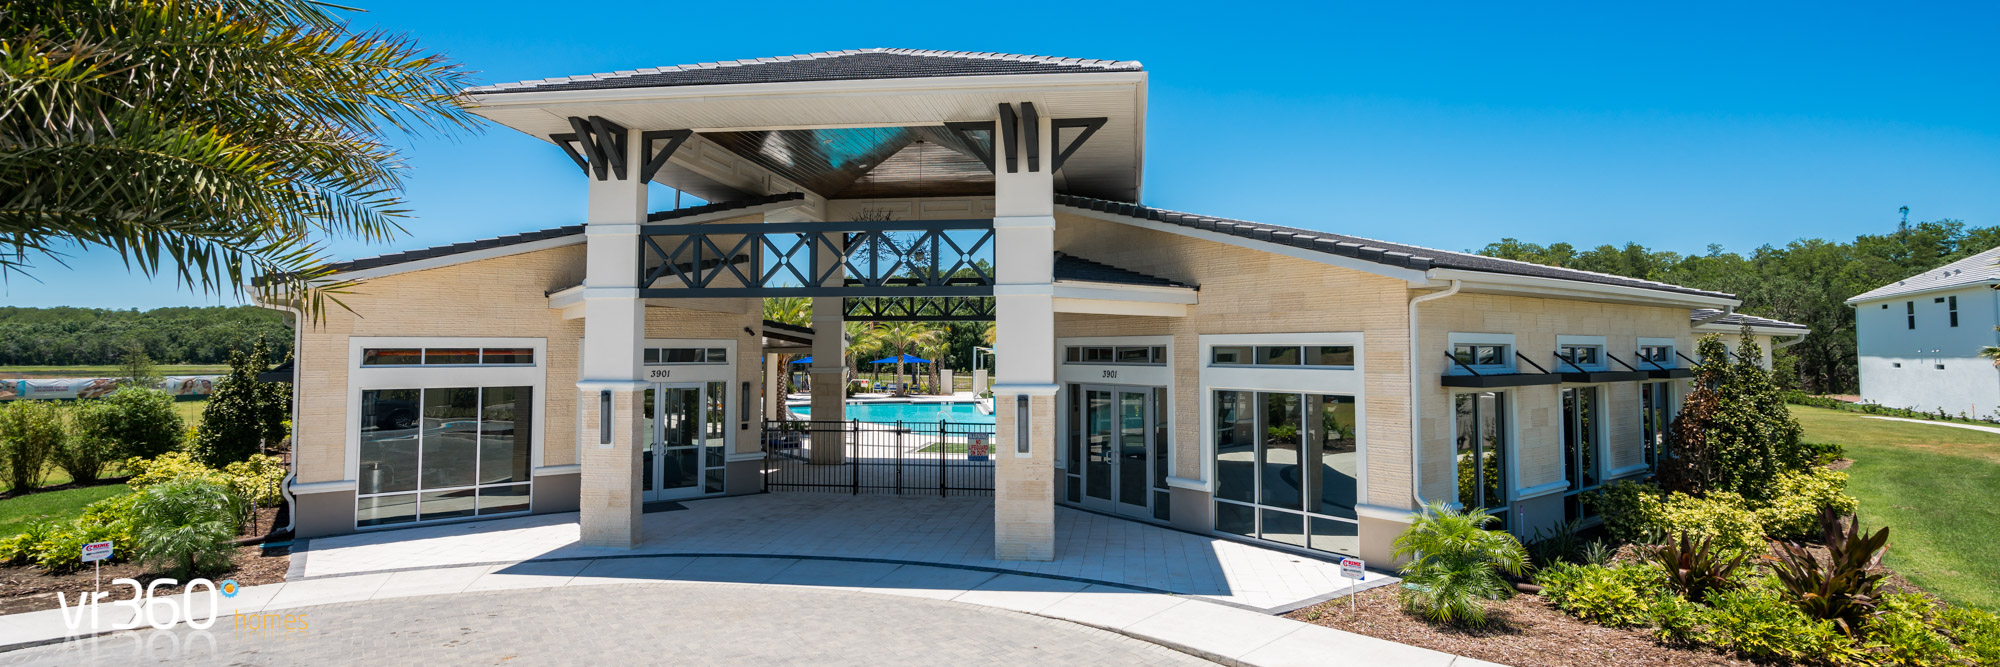 Sonoma Resort Clubhouse in Kissimmee, Florida Open to all onsite guests.